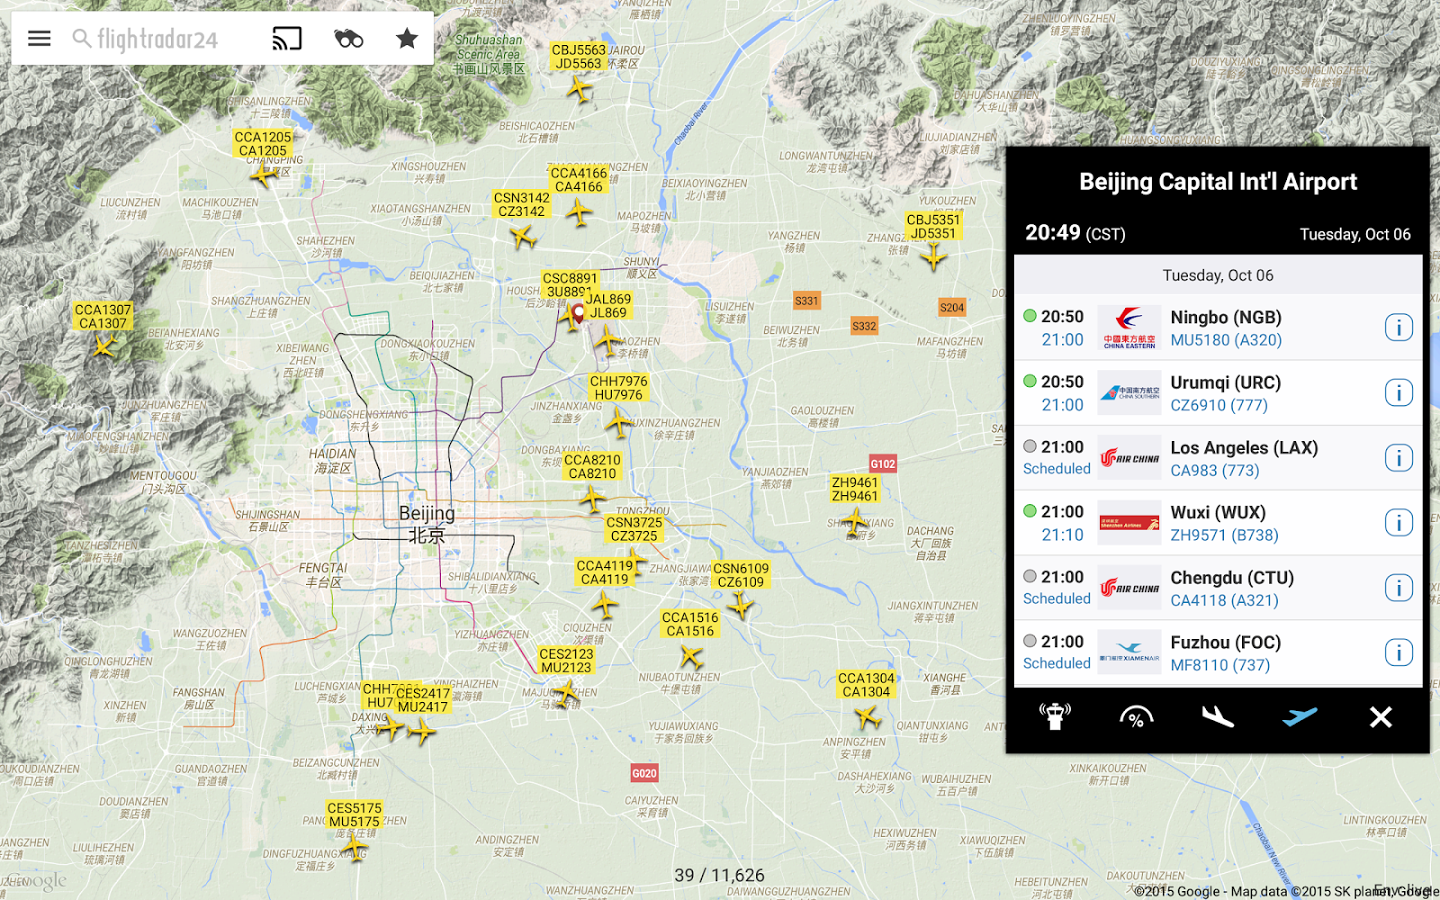 Flightradar24 - Flight Tracker